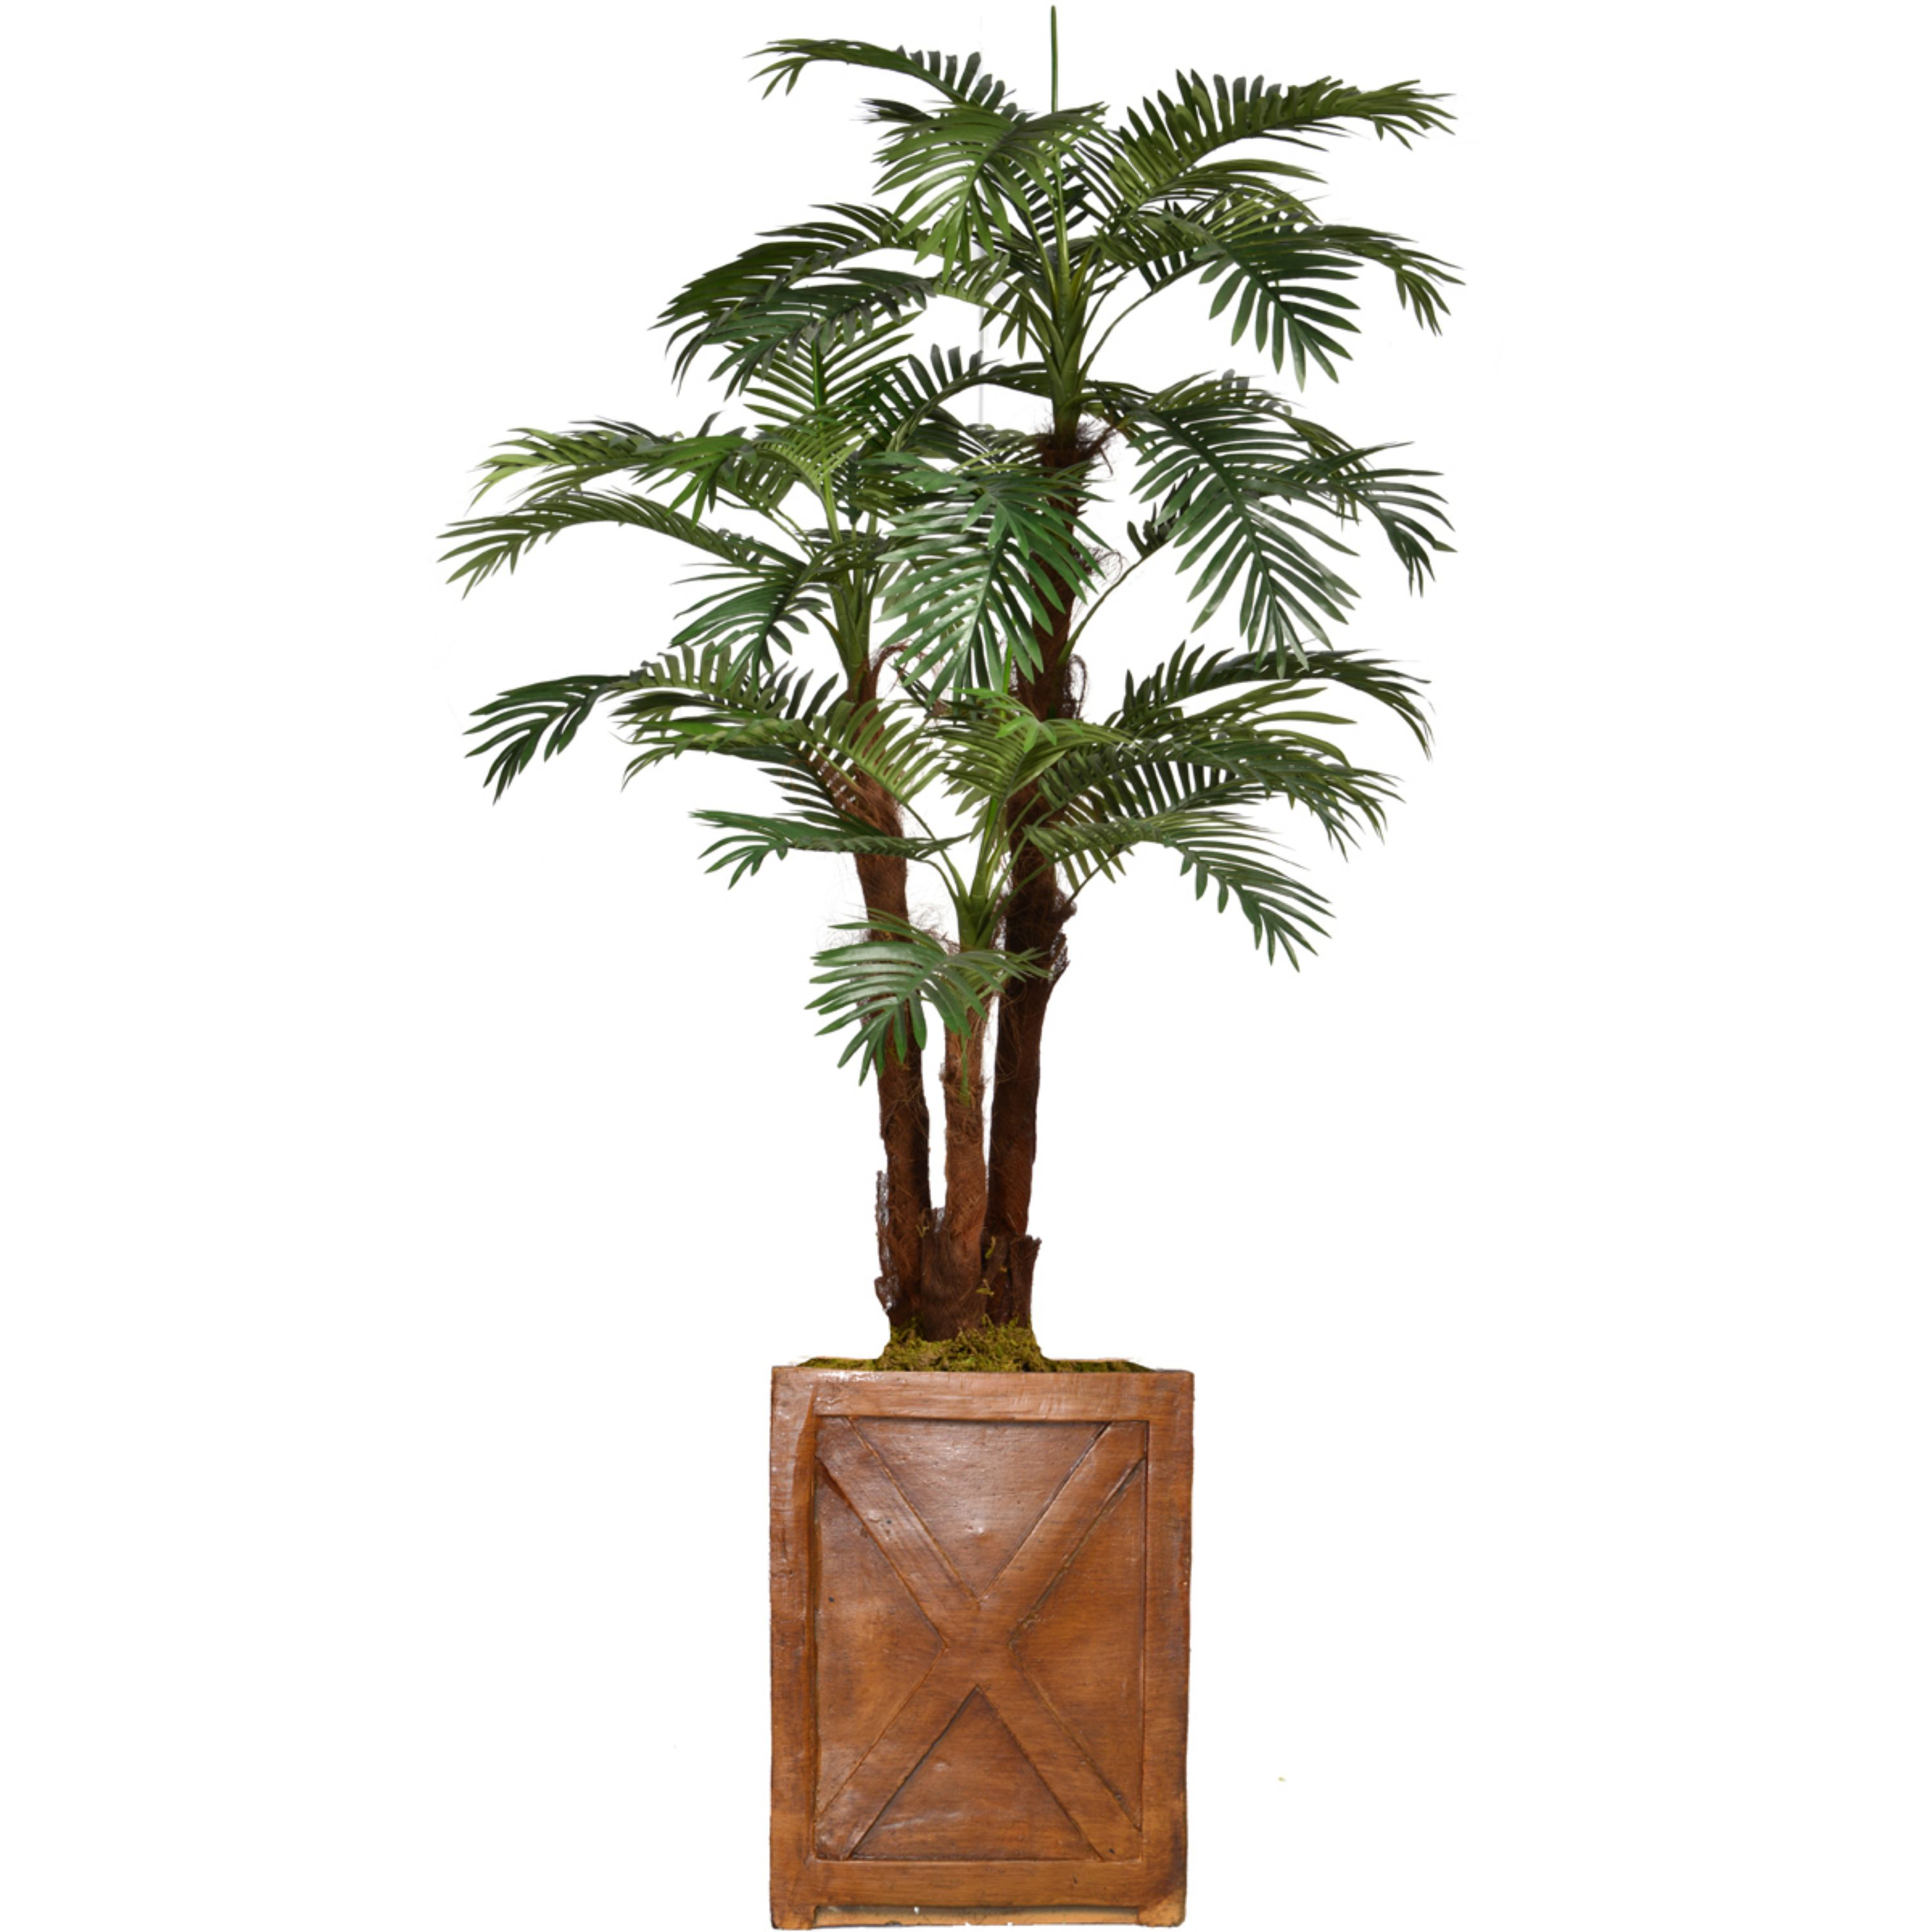 """75"""" Tall Palm Tree Artificial Decorative Indoor/ Outdoor Faux with Burlap Kit and Fiberstone Planter By Minx NY"""